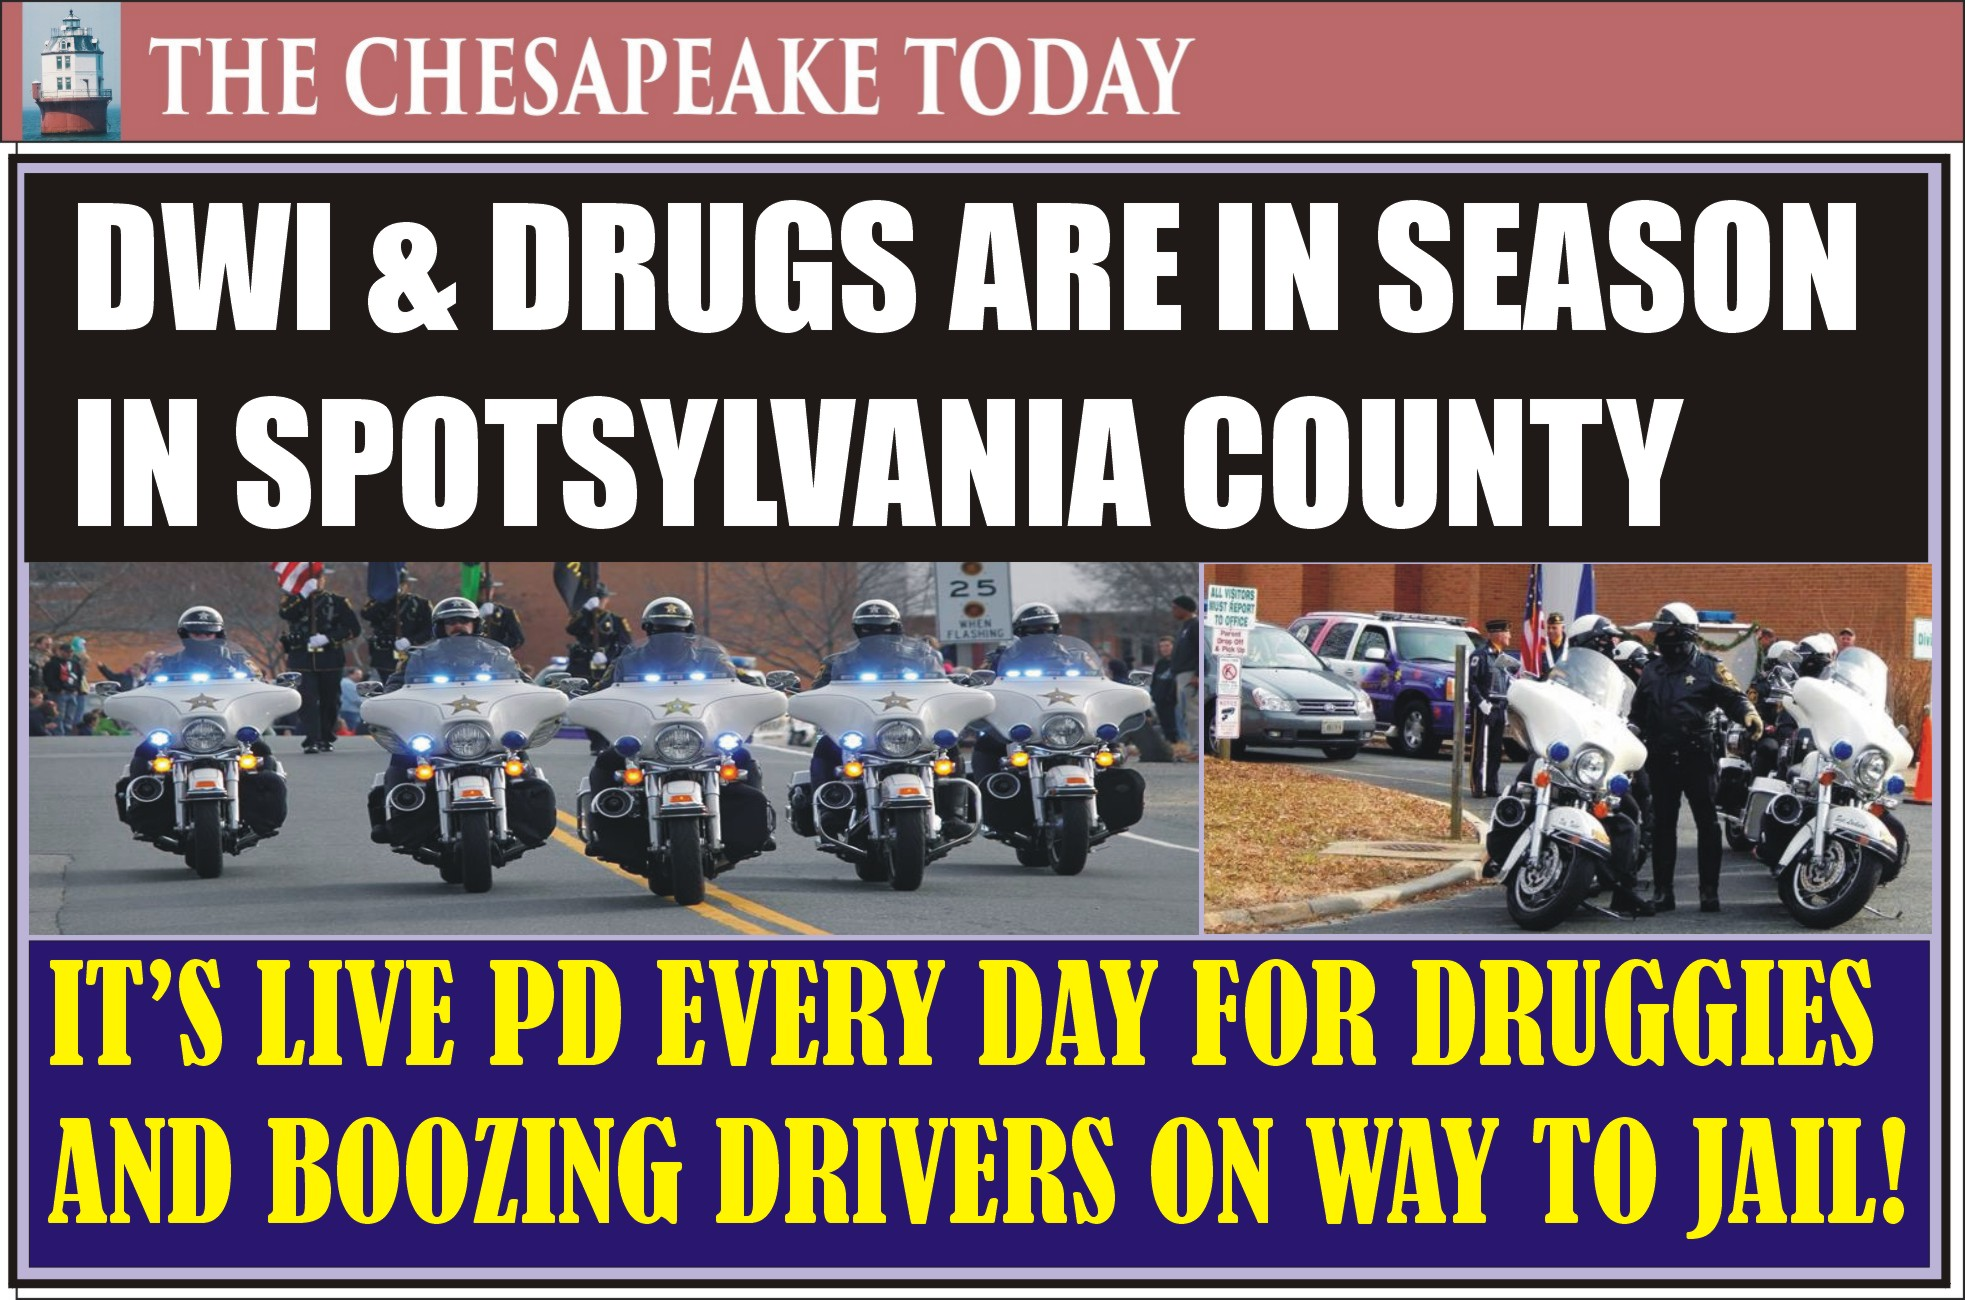 DWI HIT PARADE: Spotsylvania Sheriff Roger Harris reports DUI and narcotics arrests for Sept. & Oct. 2019